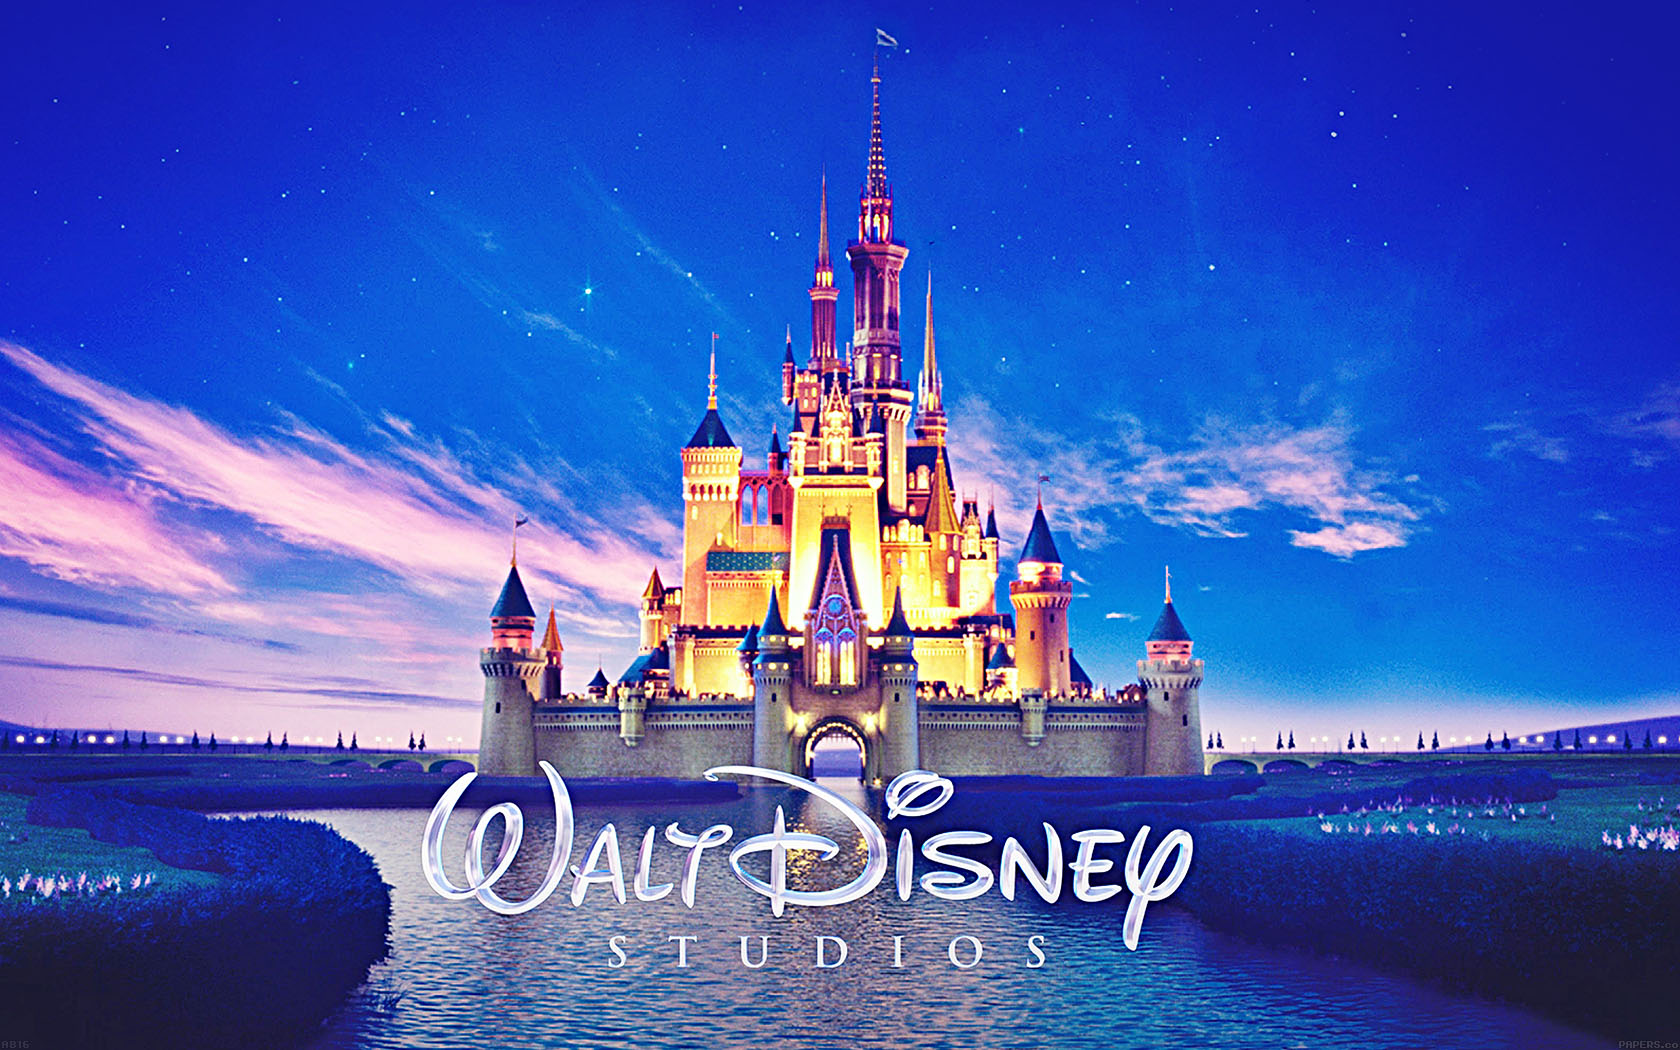 Wallpaper Macbook Air Fall Art Ab16 Wallpaper Walt Disney Studios Castle Illust Papers Co